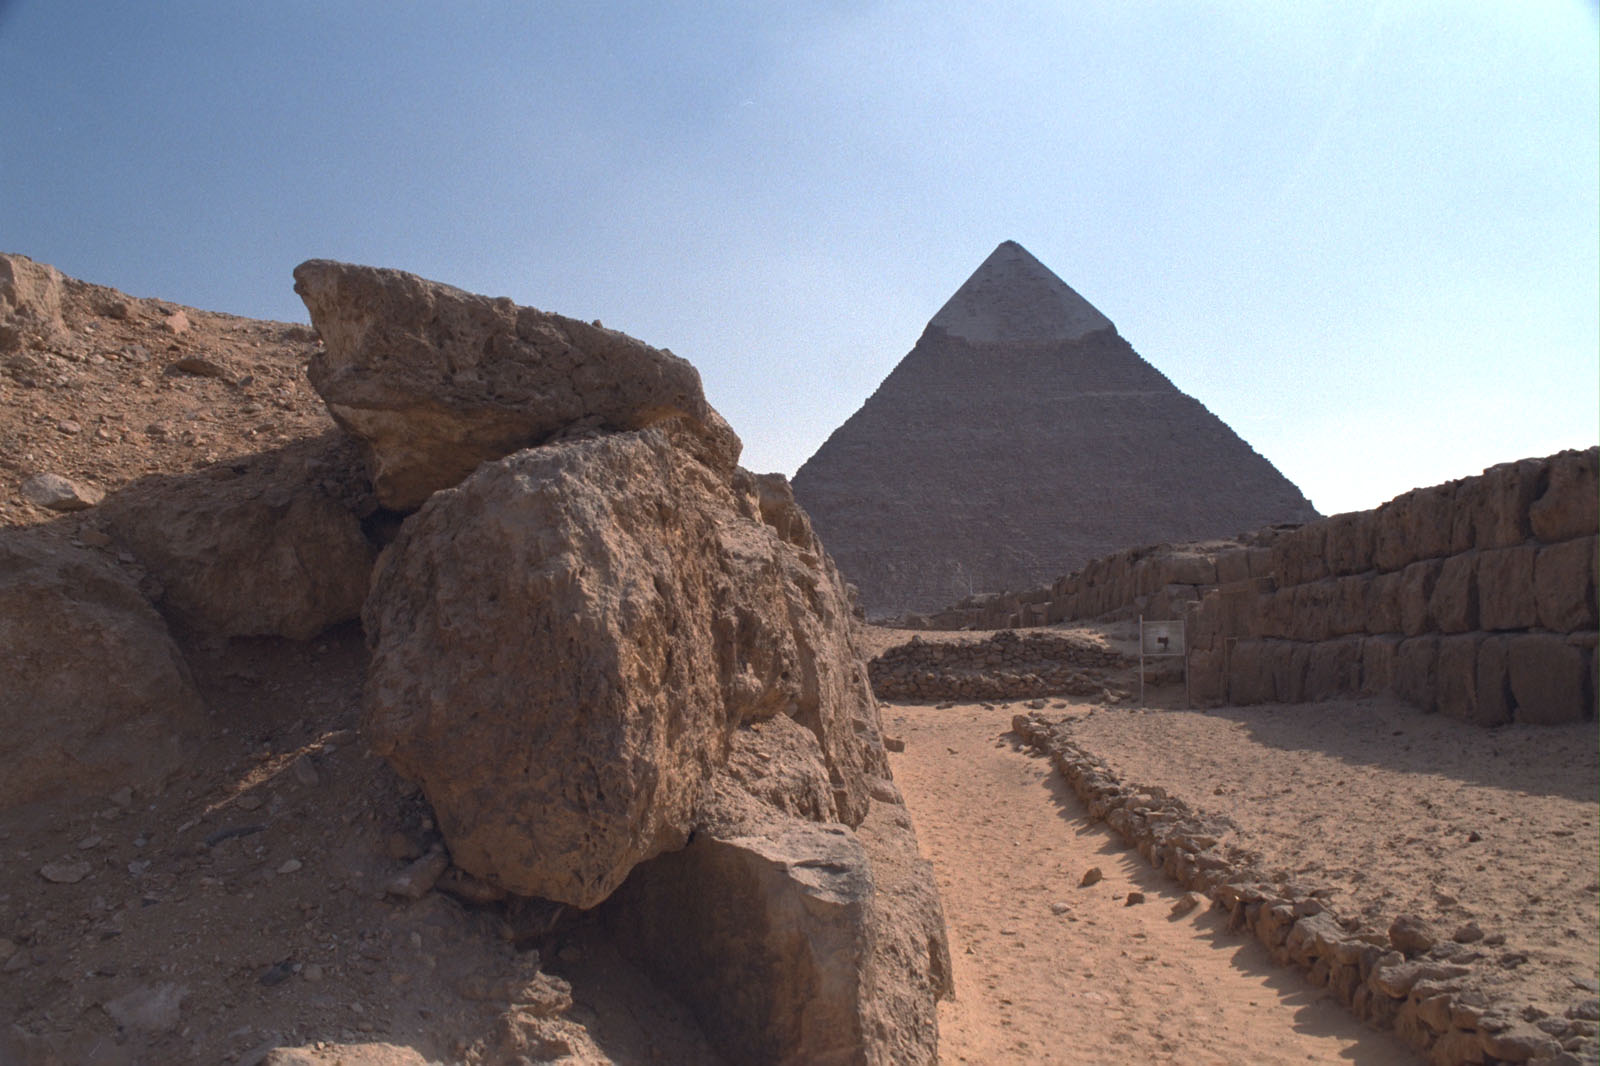 Western Cemetery: Site: Giza; View: Khafre pyramid, G 4760, G 4660